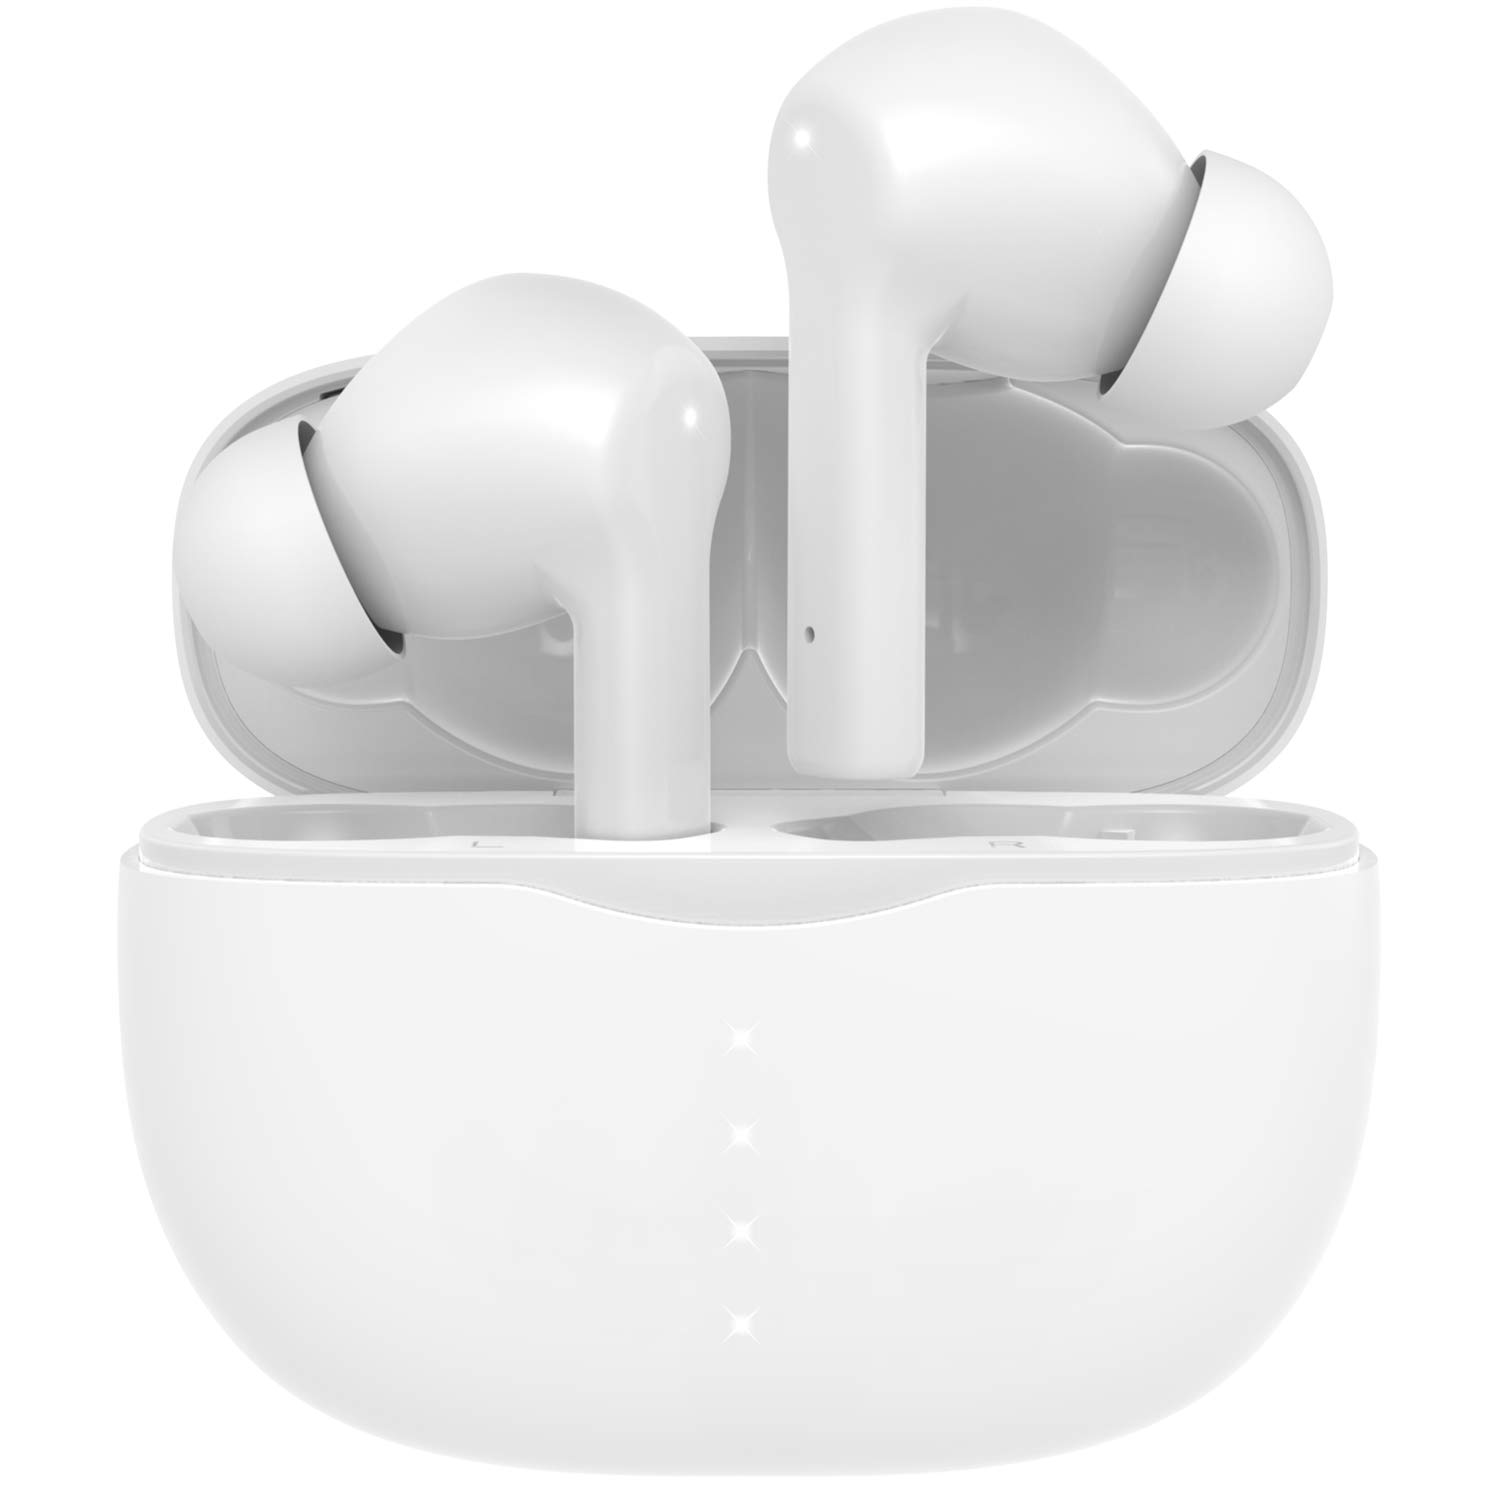 Auriculares Earbuds Inalambricos Amuoc Waterproof IPX7 White